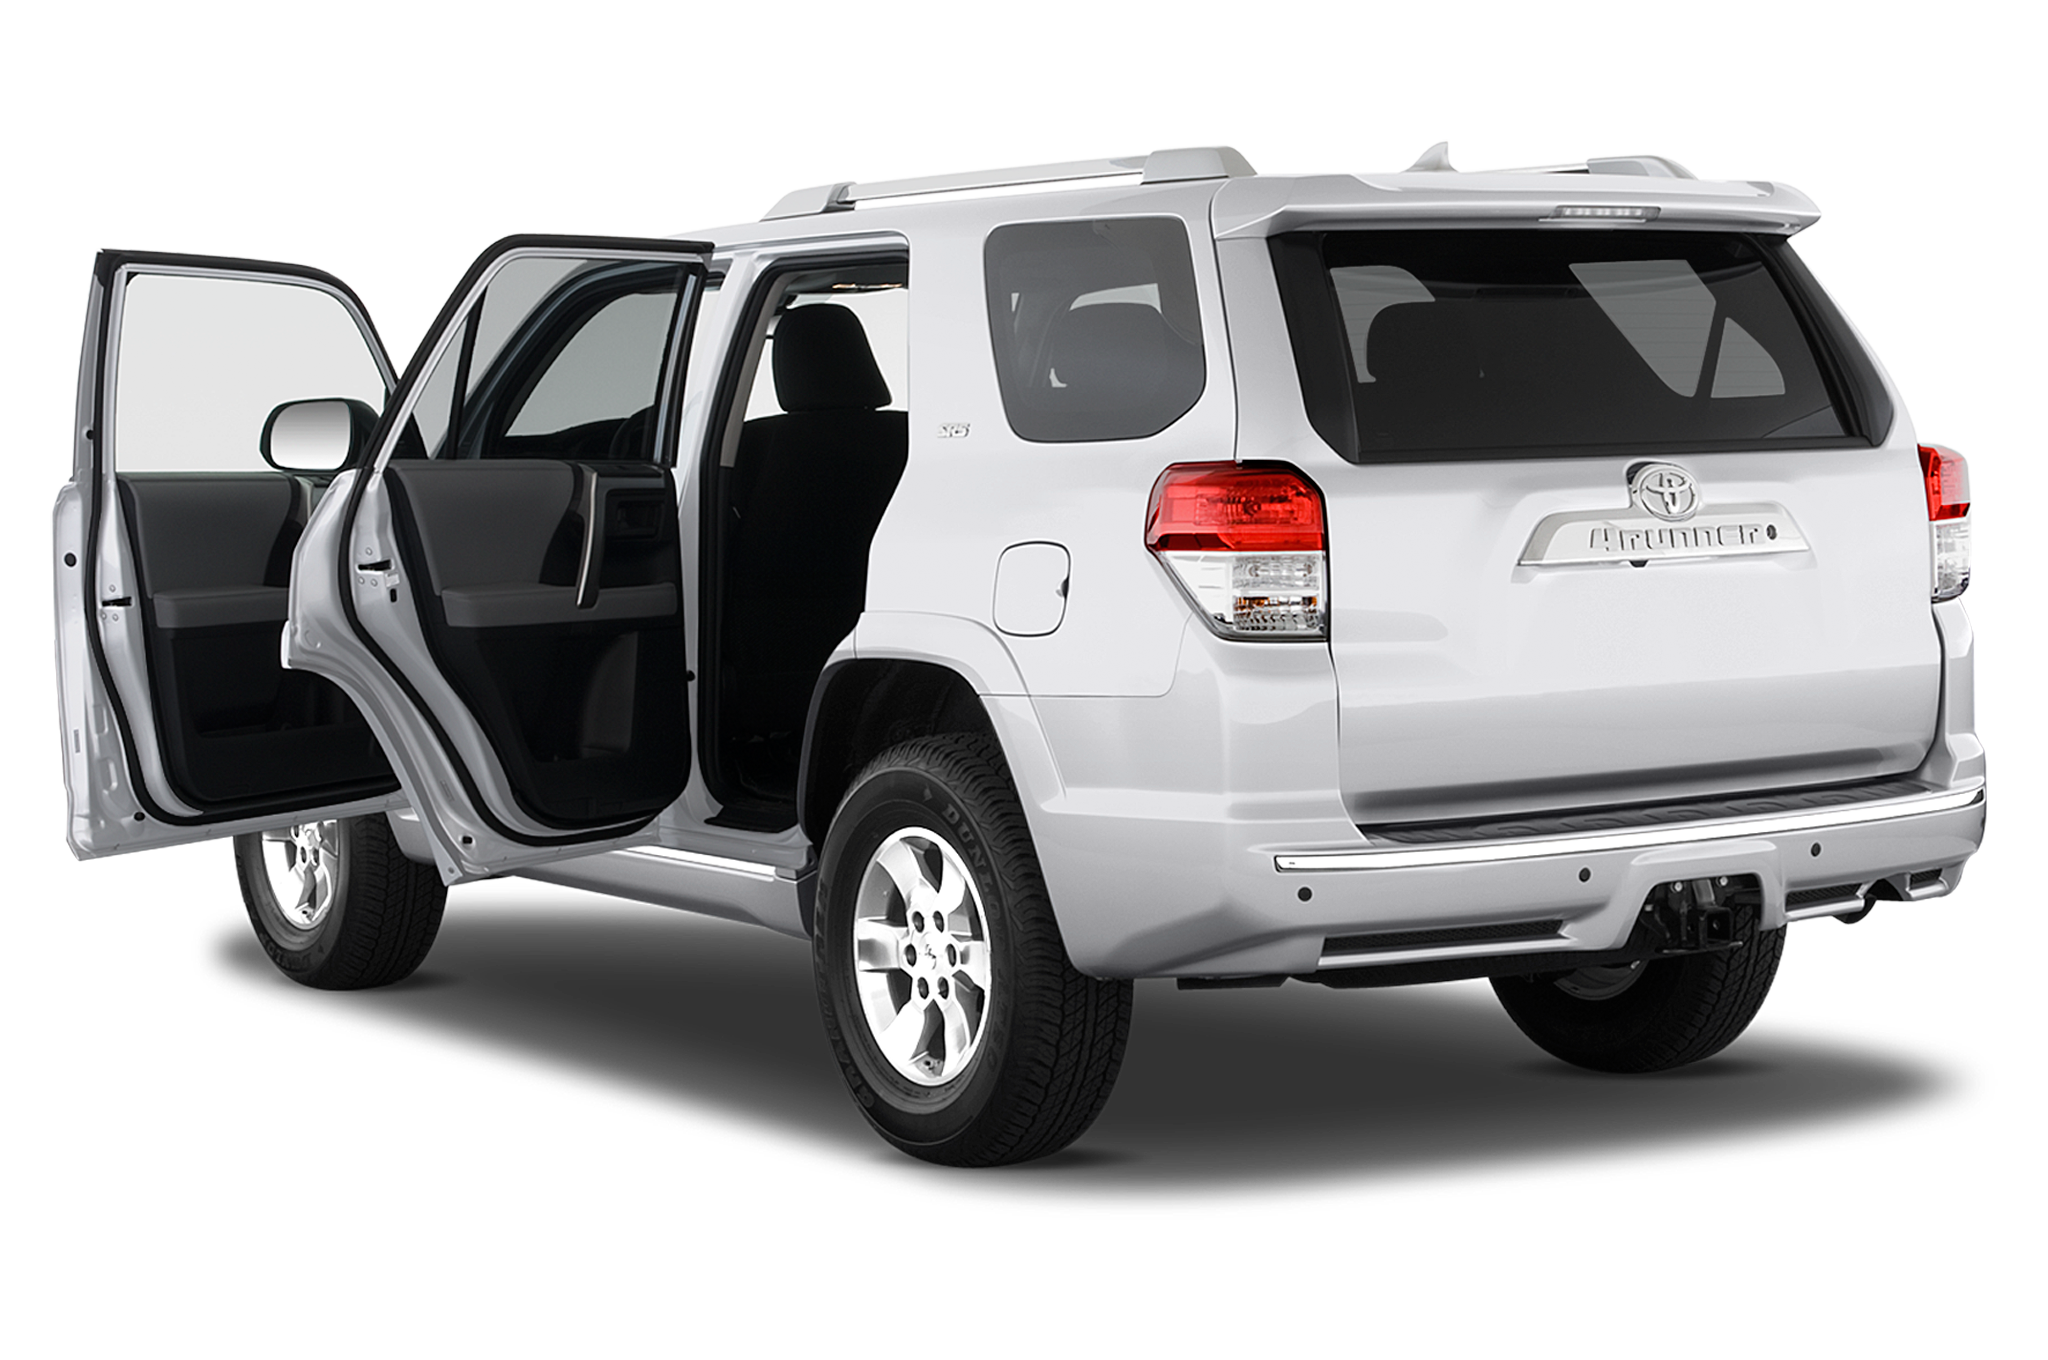 2010 Toyota 4Runner - Toyota Compact SUV Review ...